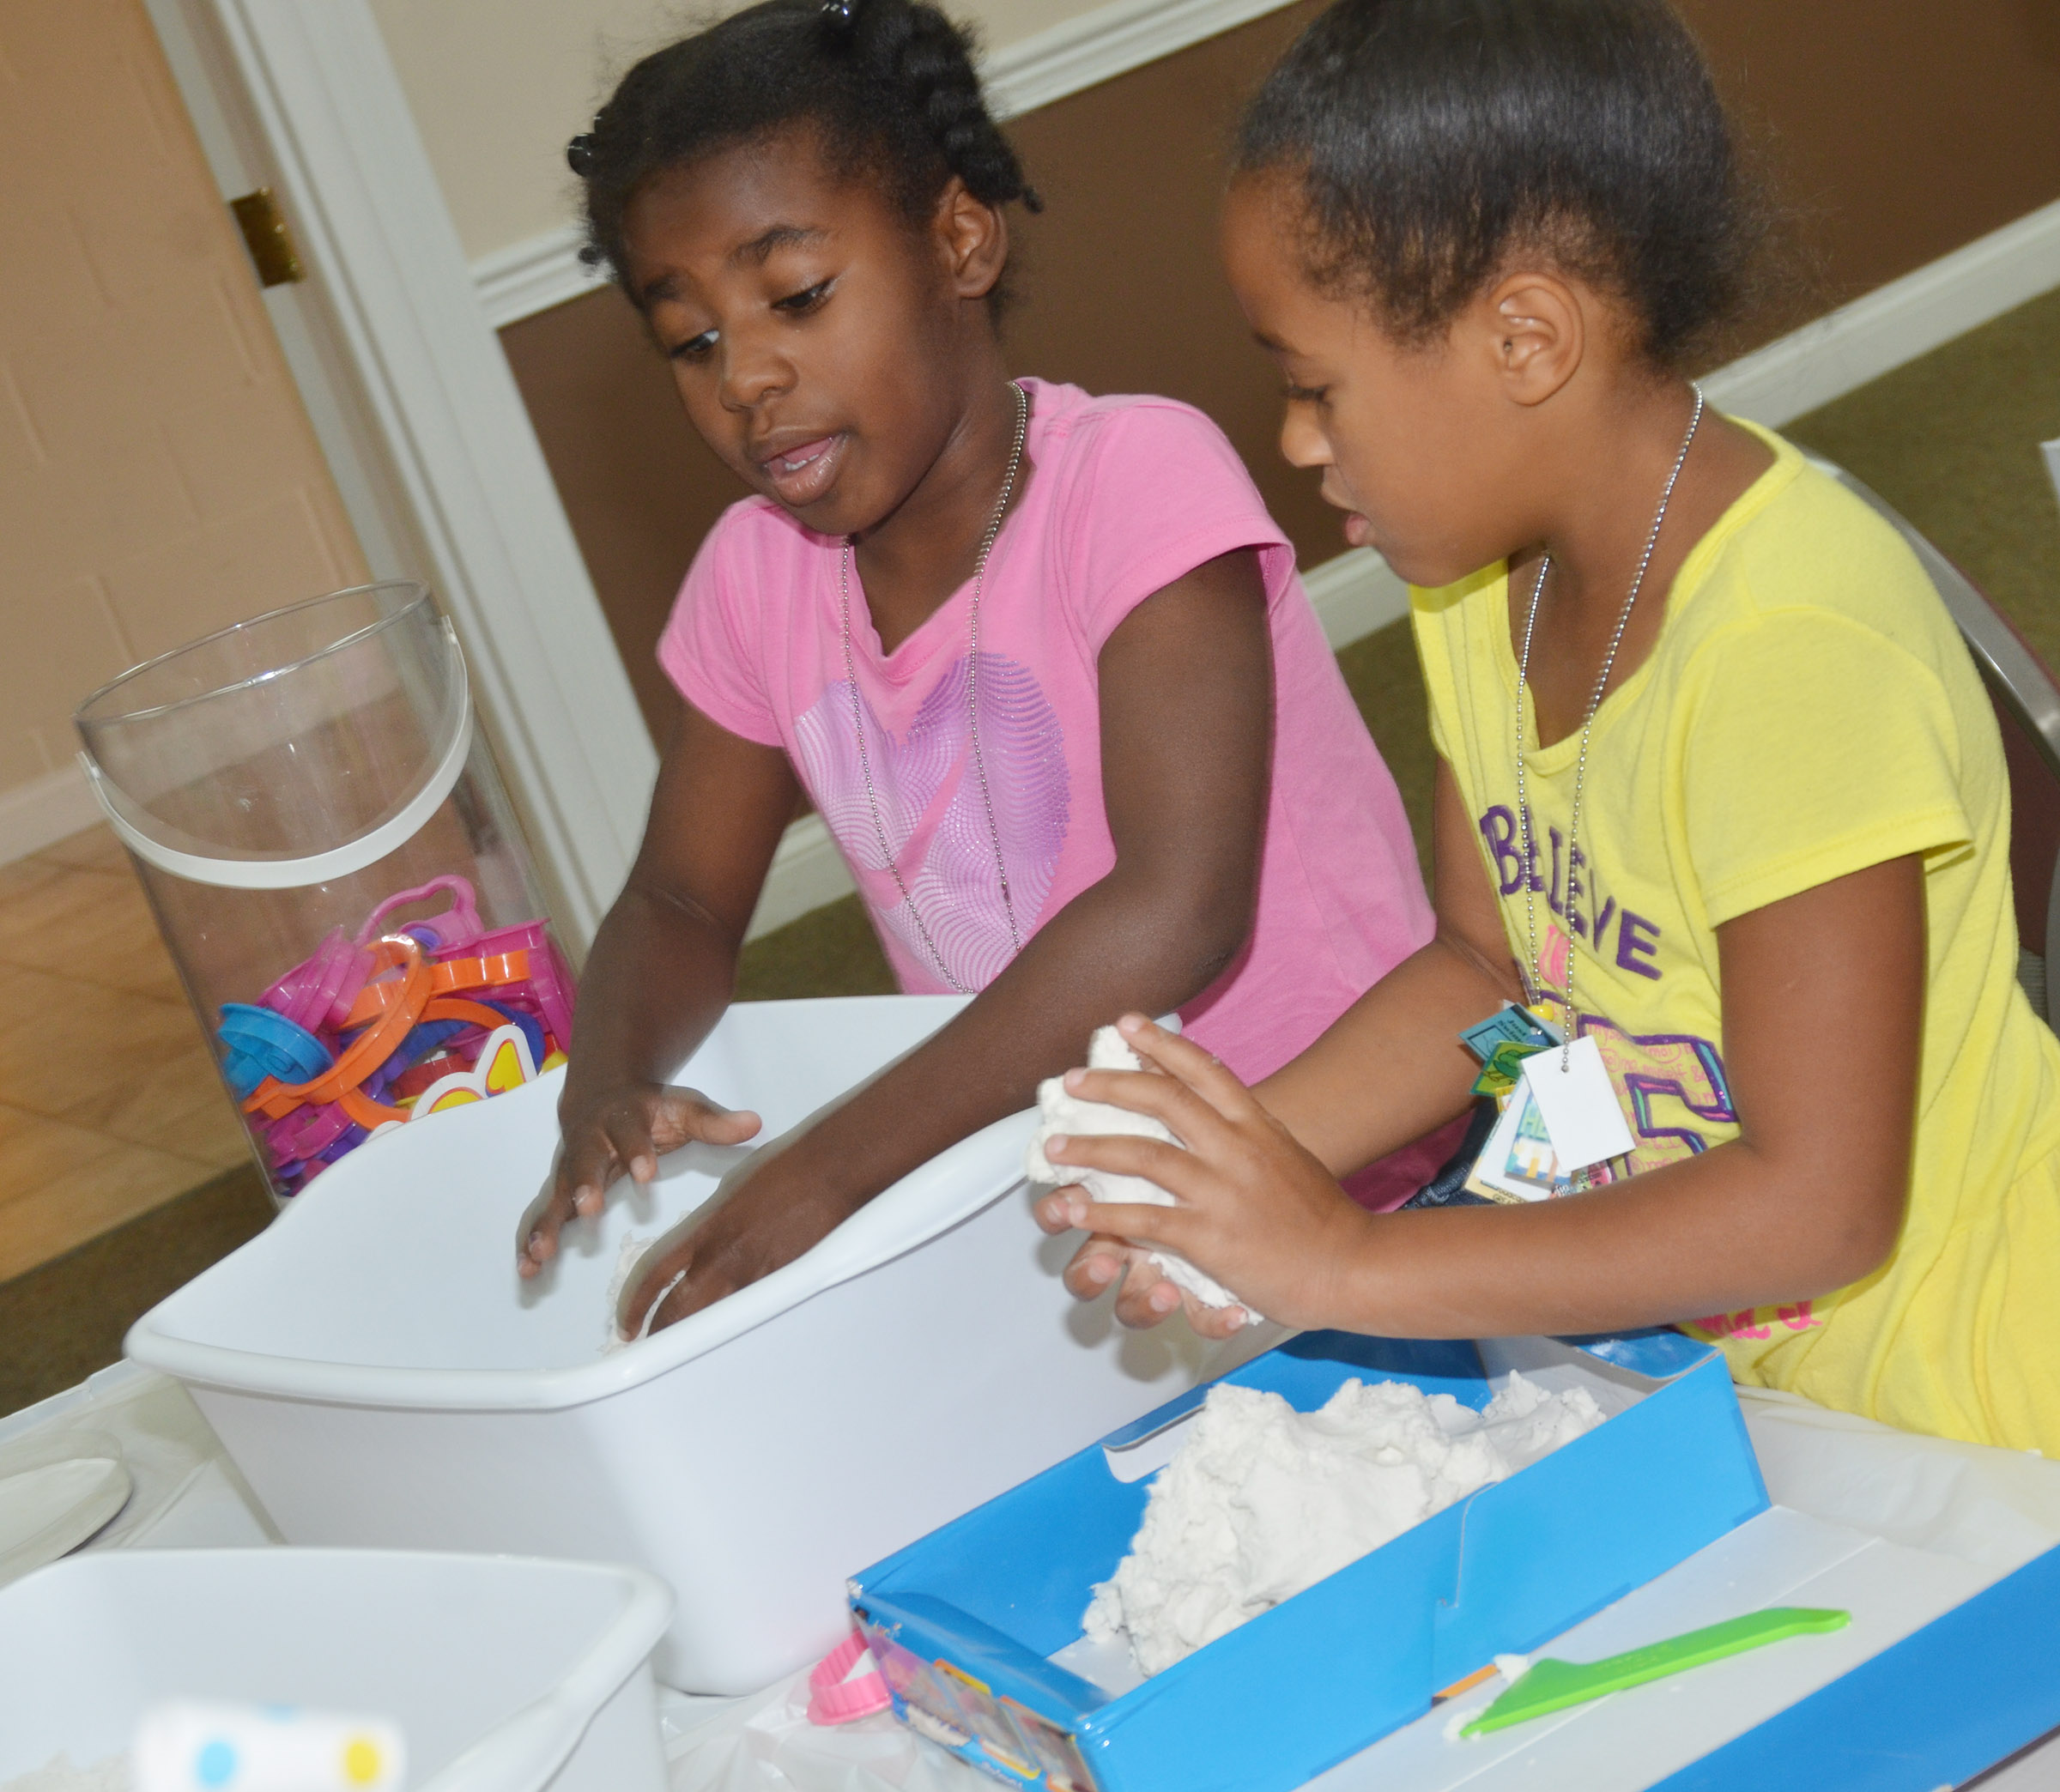 CES first-graders Destini Gholston, at left, and Kadance Ford talk as they make shapes in sand.